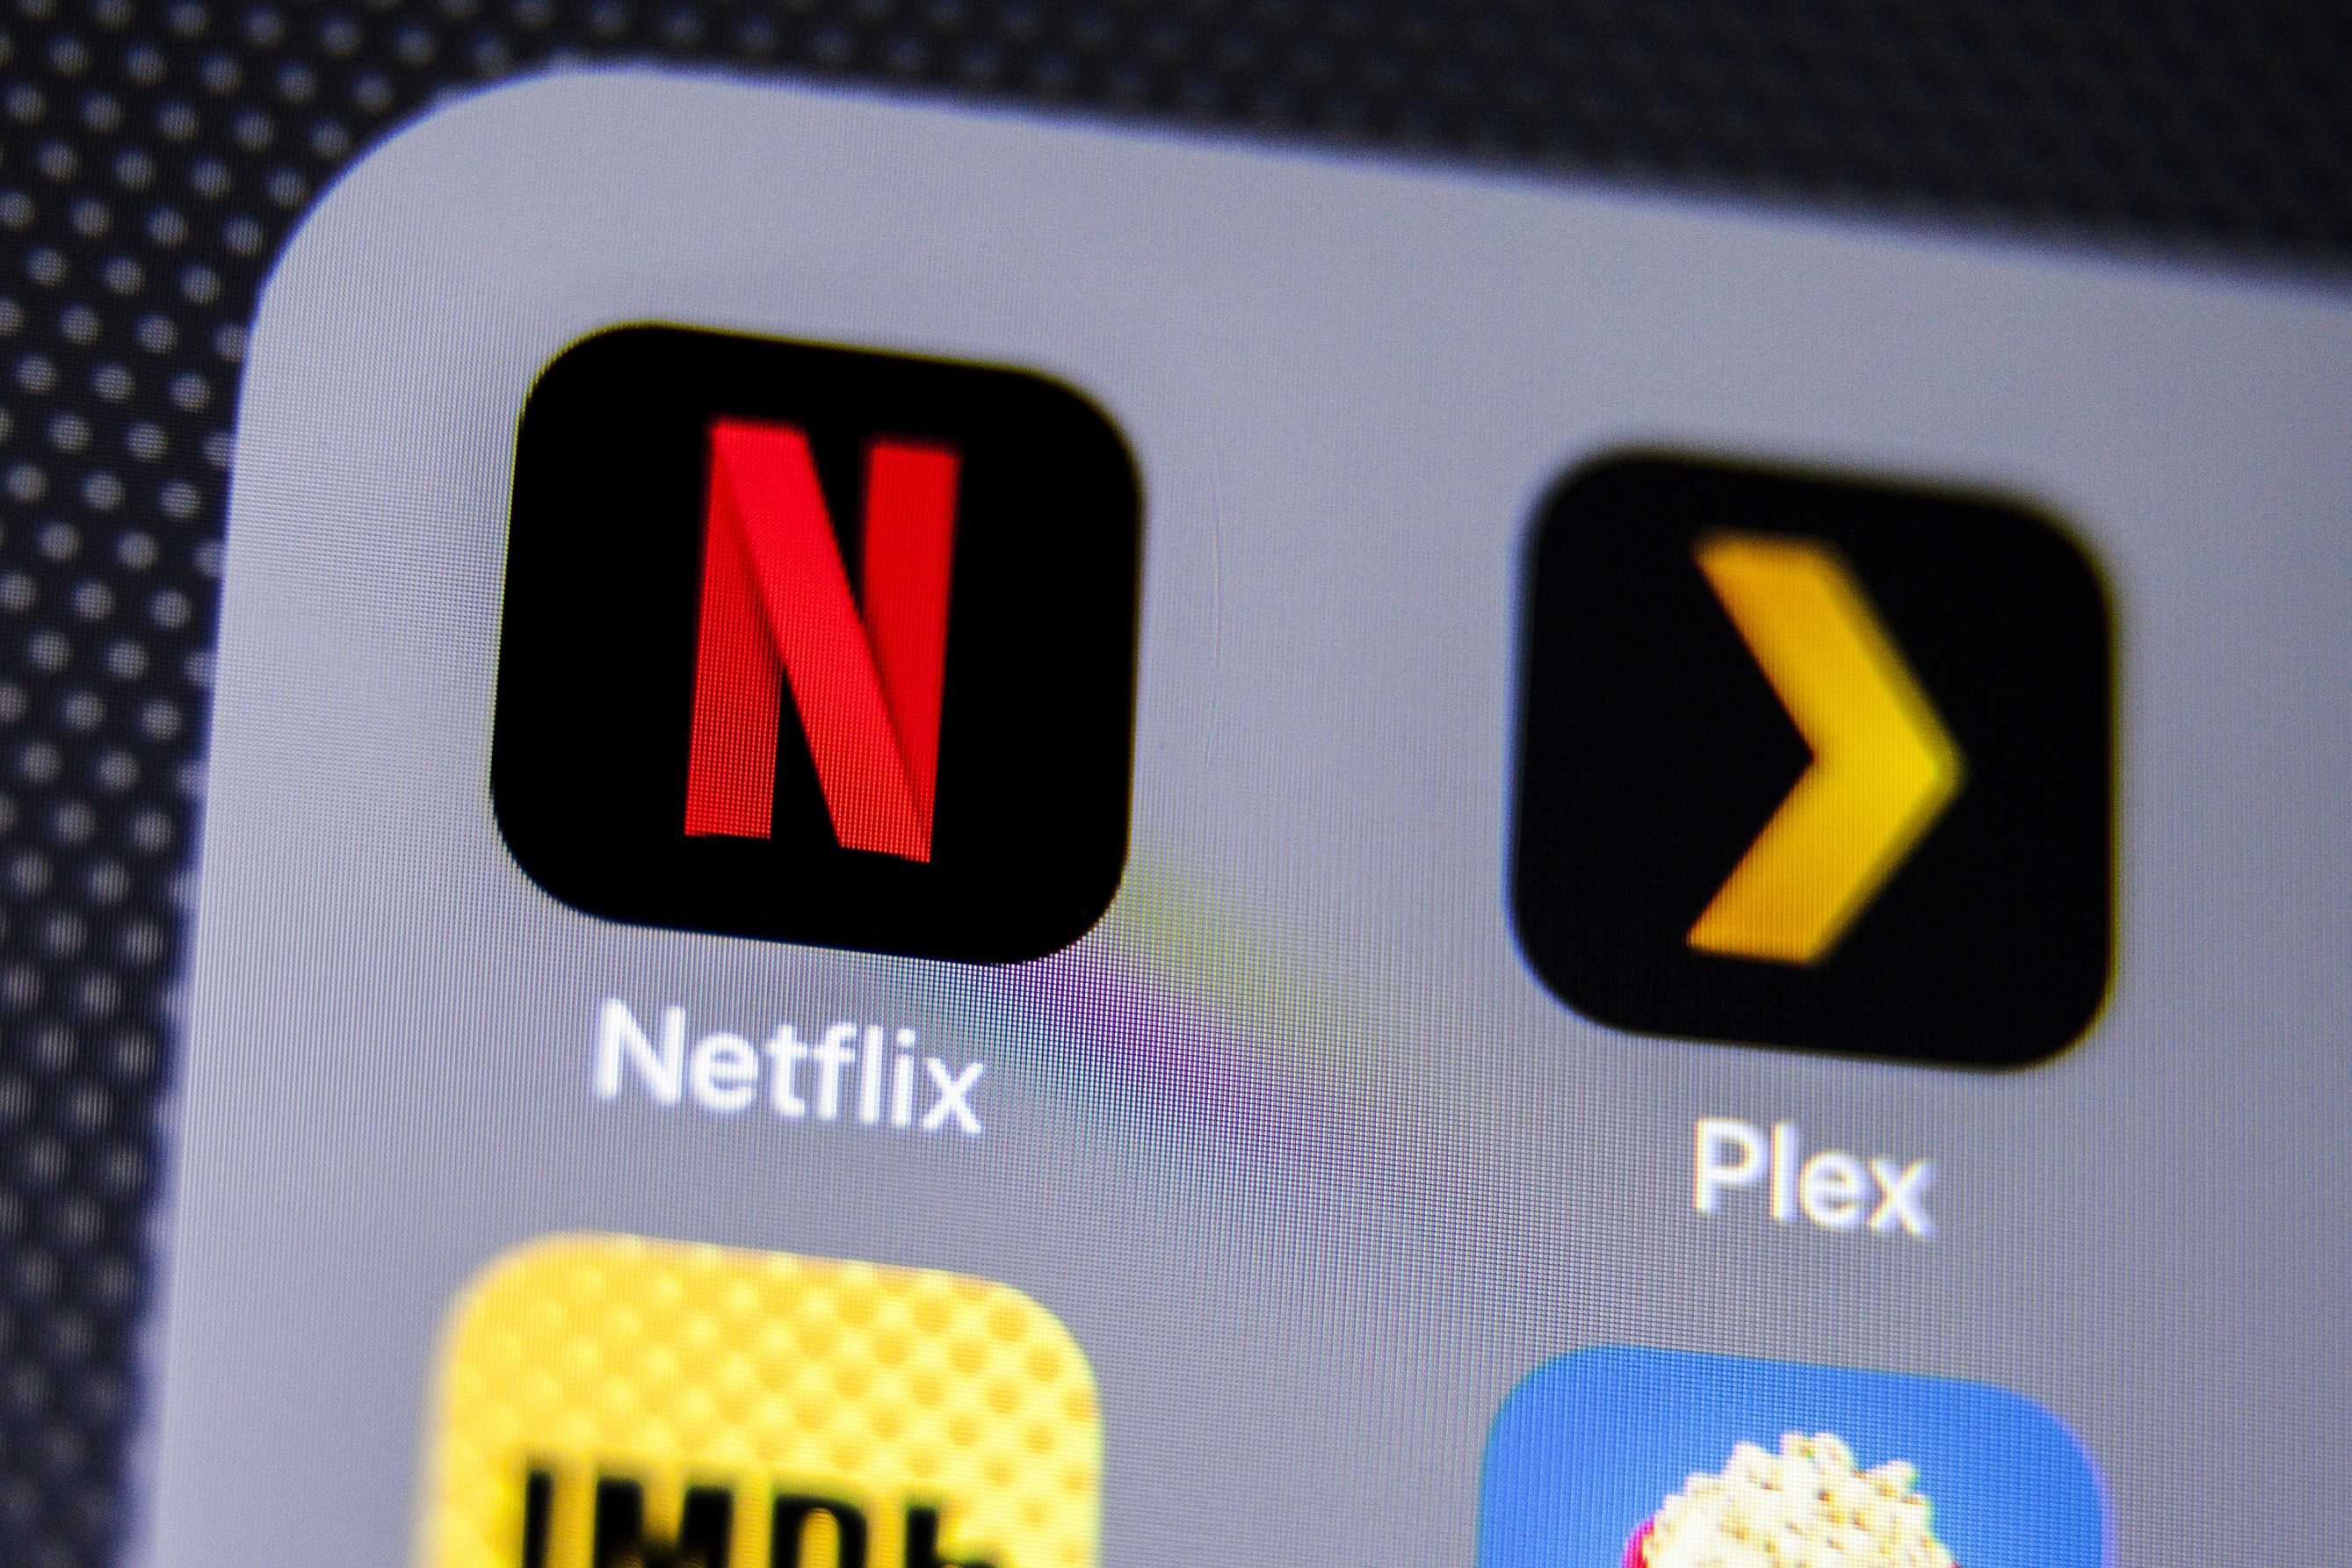 Police warn Netflix users: Don't click that link